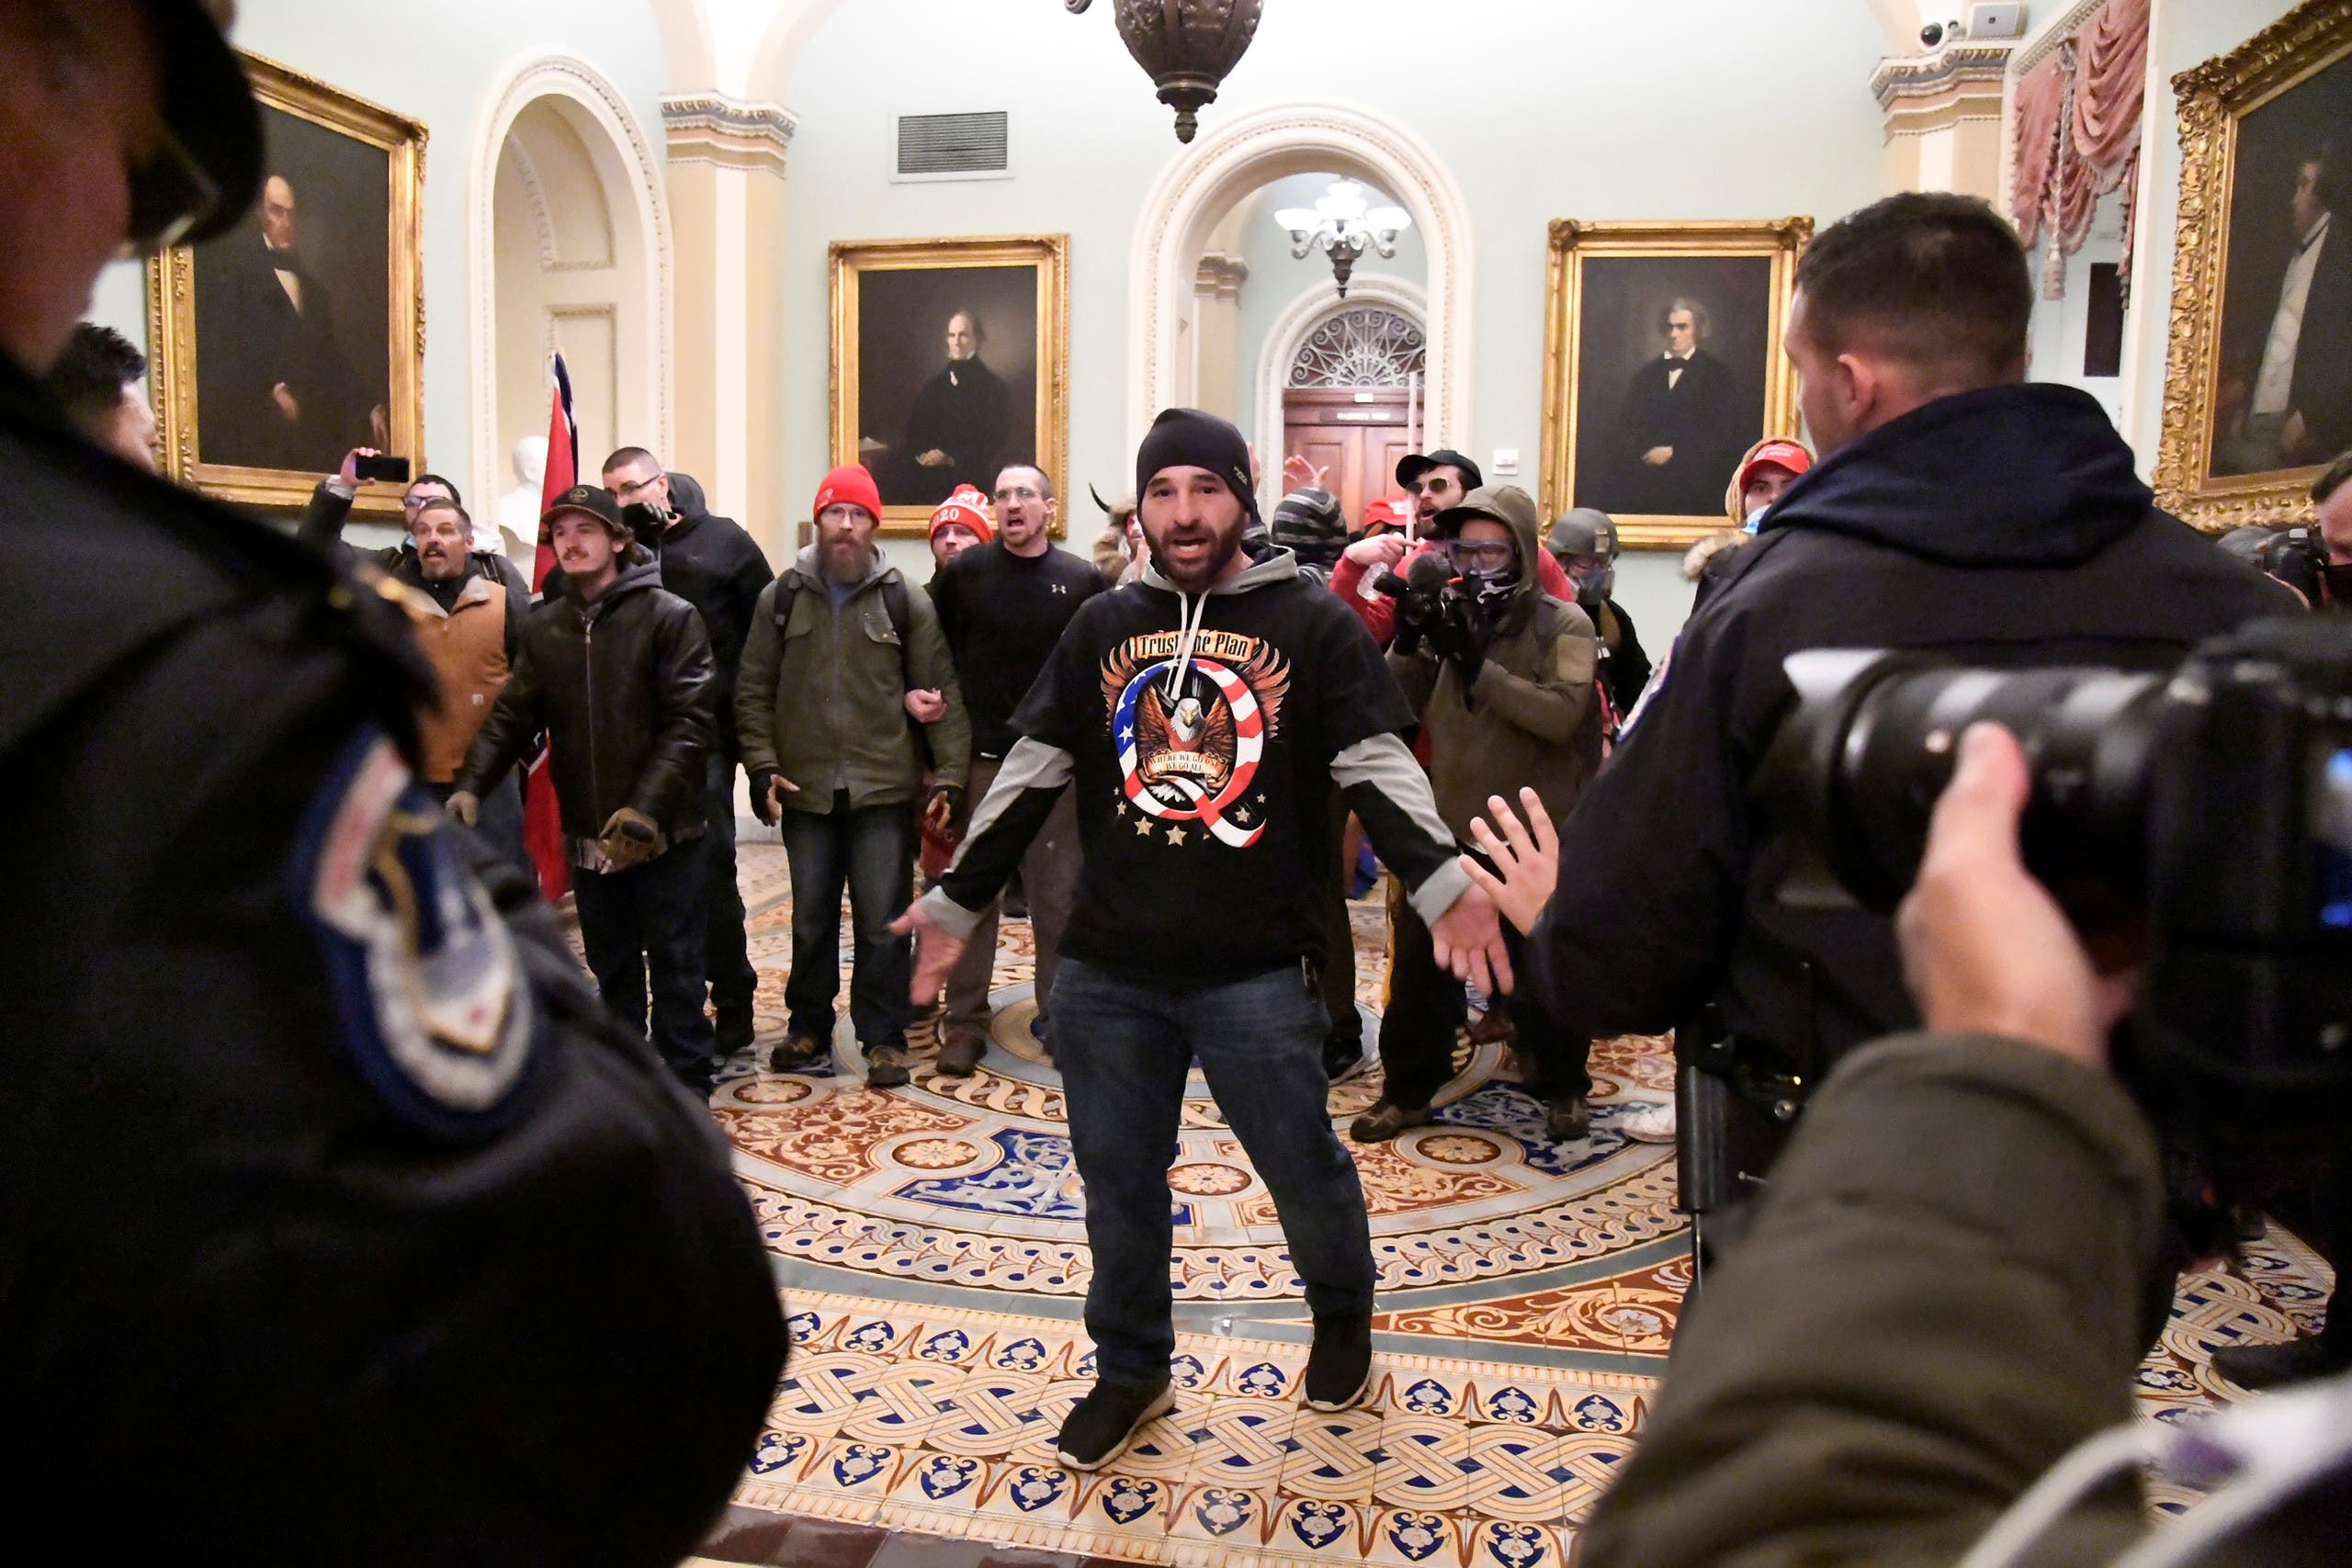 A supporter of President Donald Trump confronts police as Trump supporters demonstrate on the second floor of the US Capitol near the entrance to the Senate after breaching security defenses, in Washington. (Reuters)